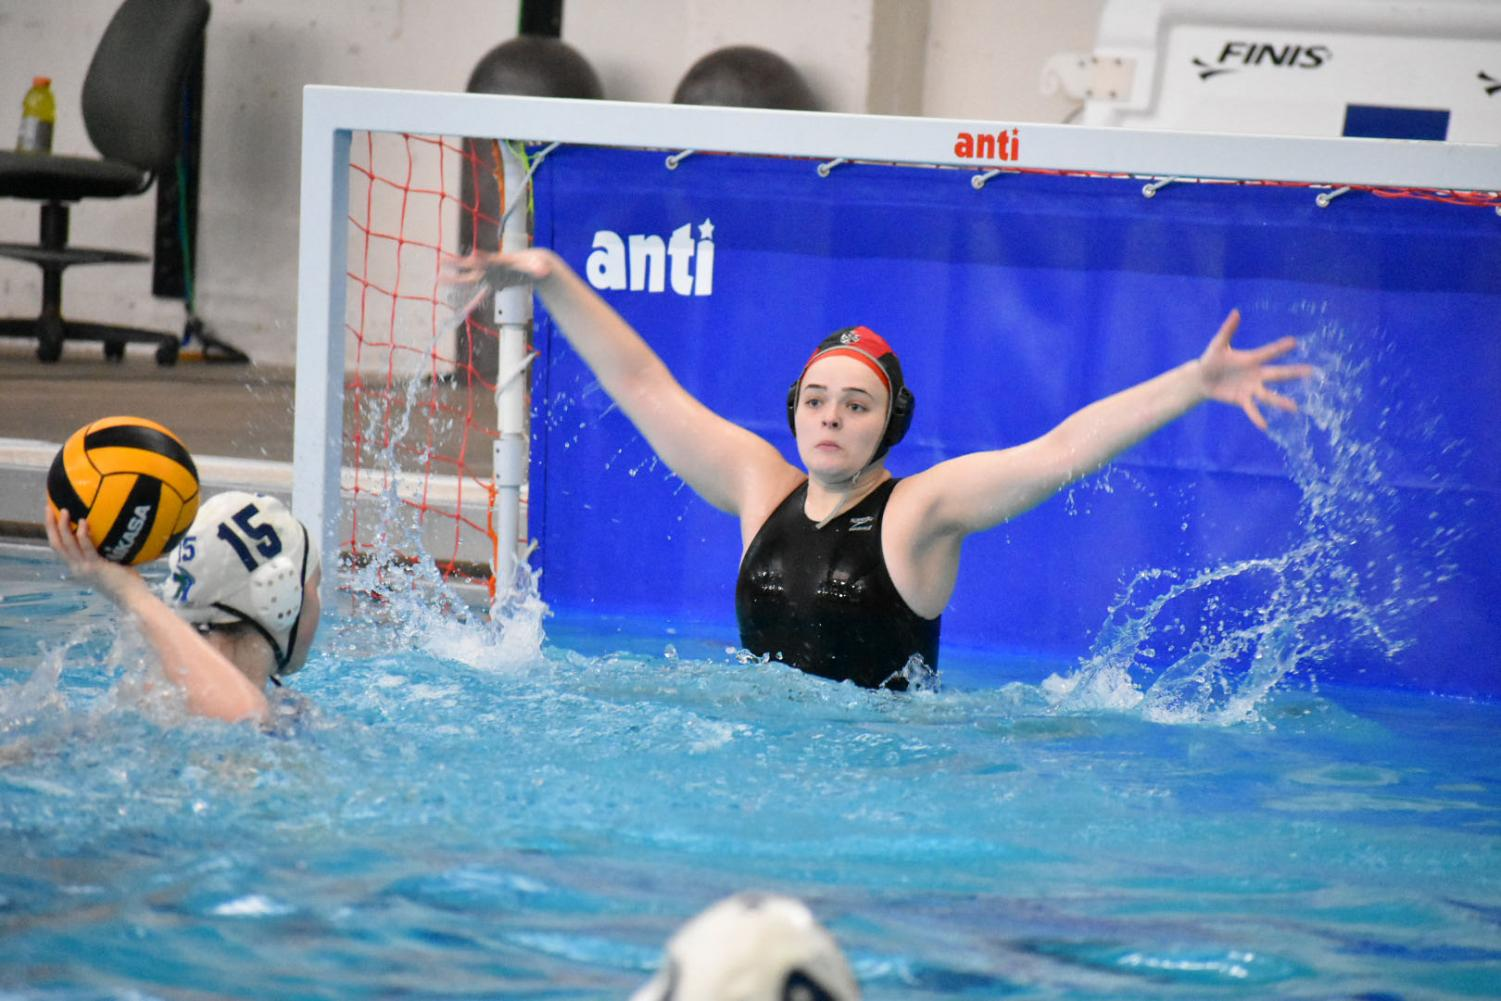 Junior Peyton Nufer jumps to block a shot during an intense water polo game.  Photo by Demi Ovalle